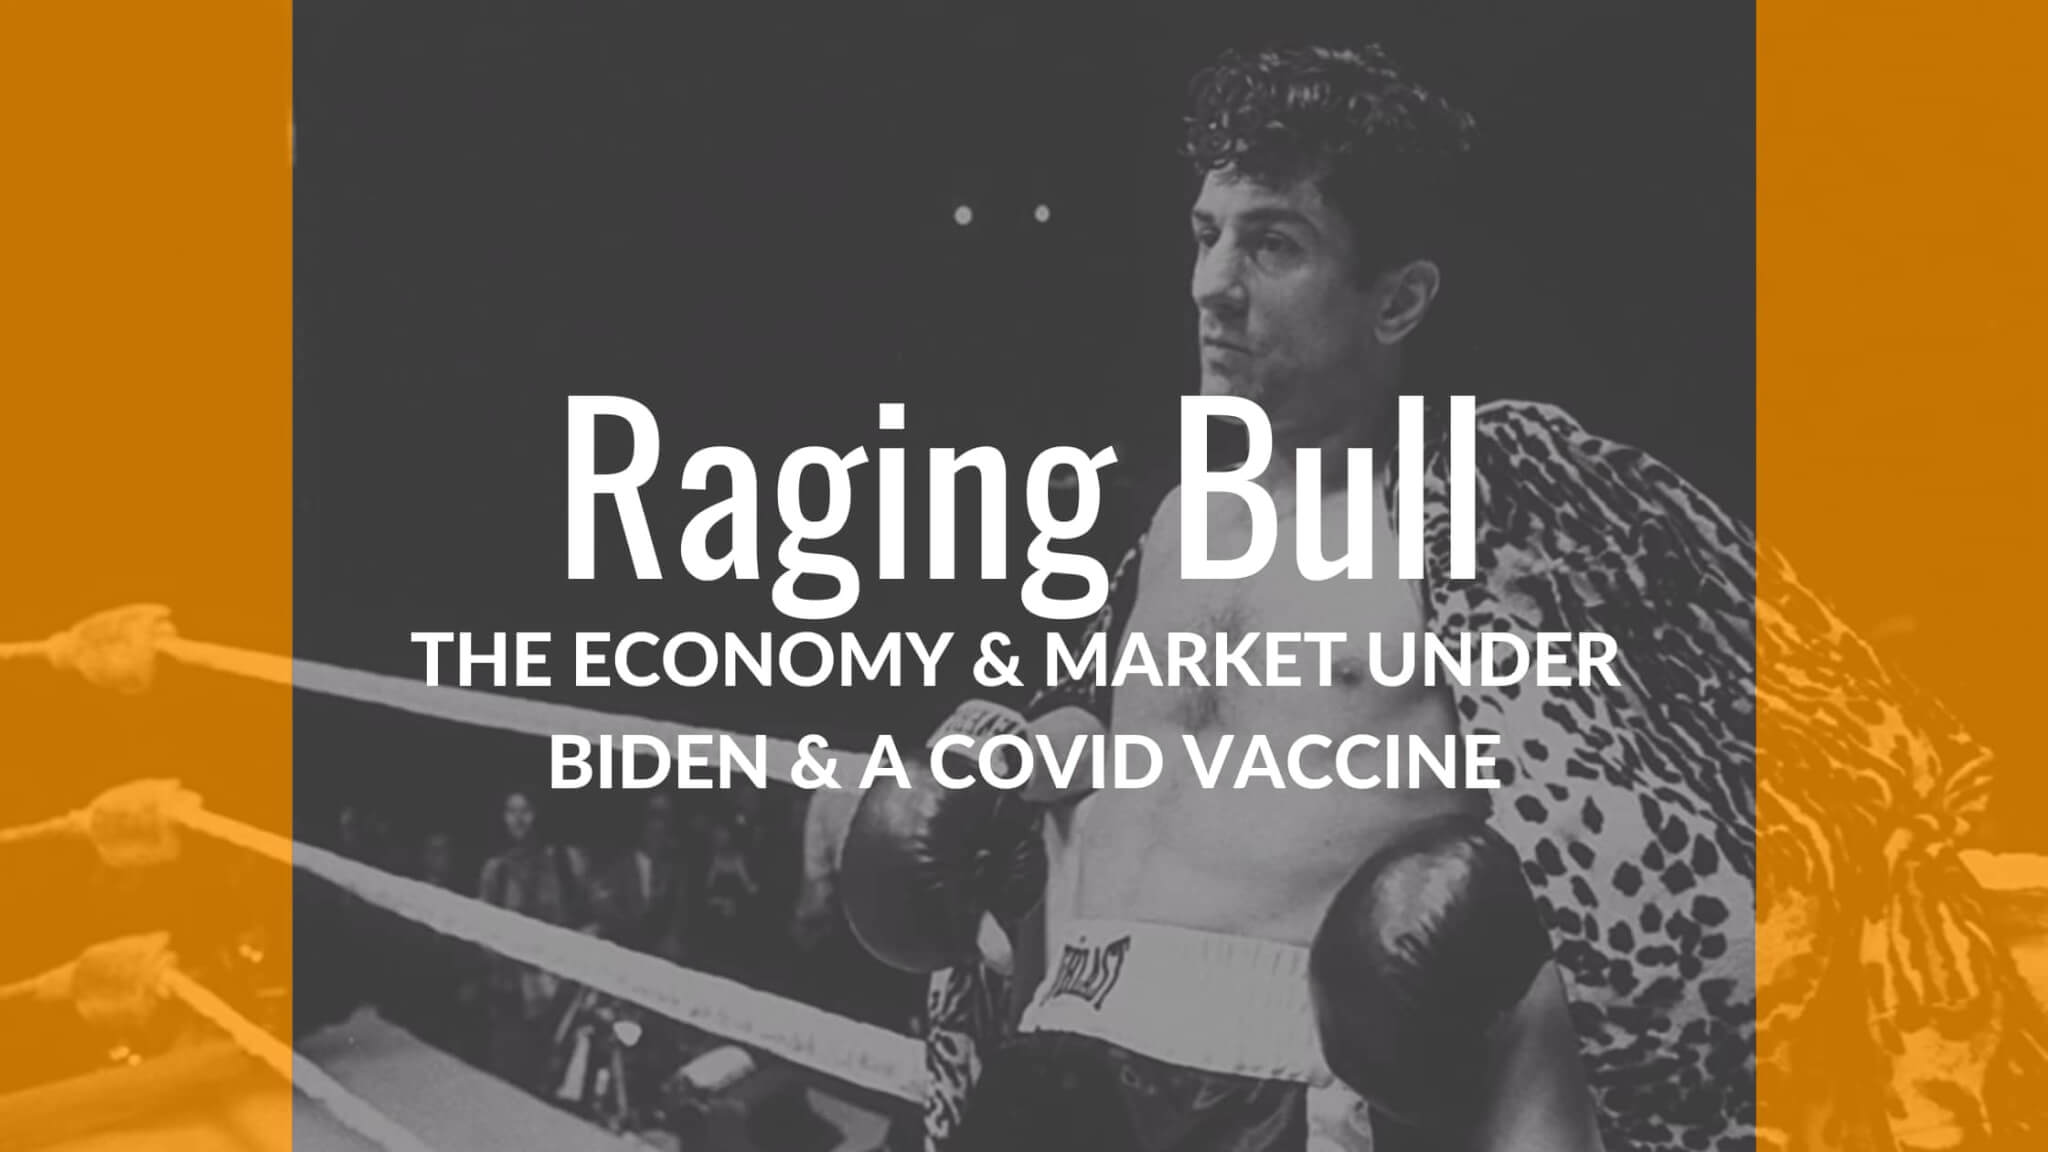 Raging Bull Biden Vaccine